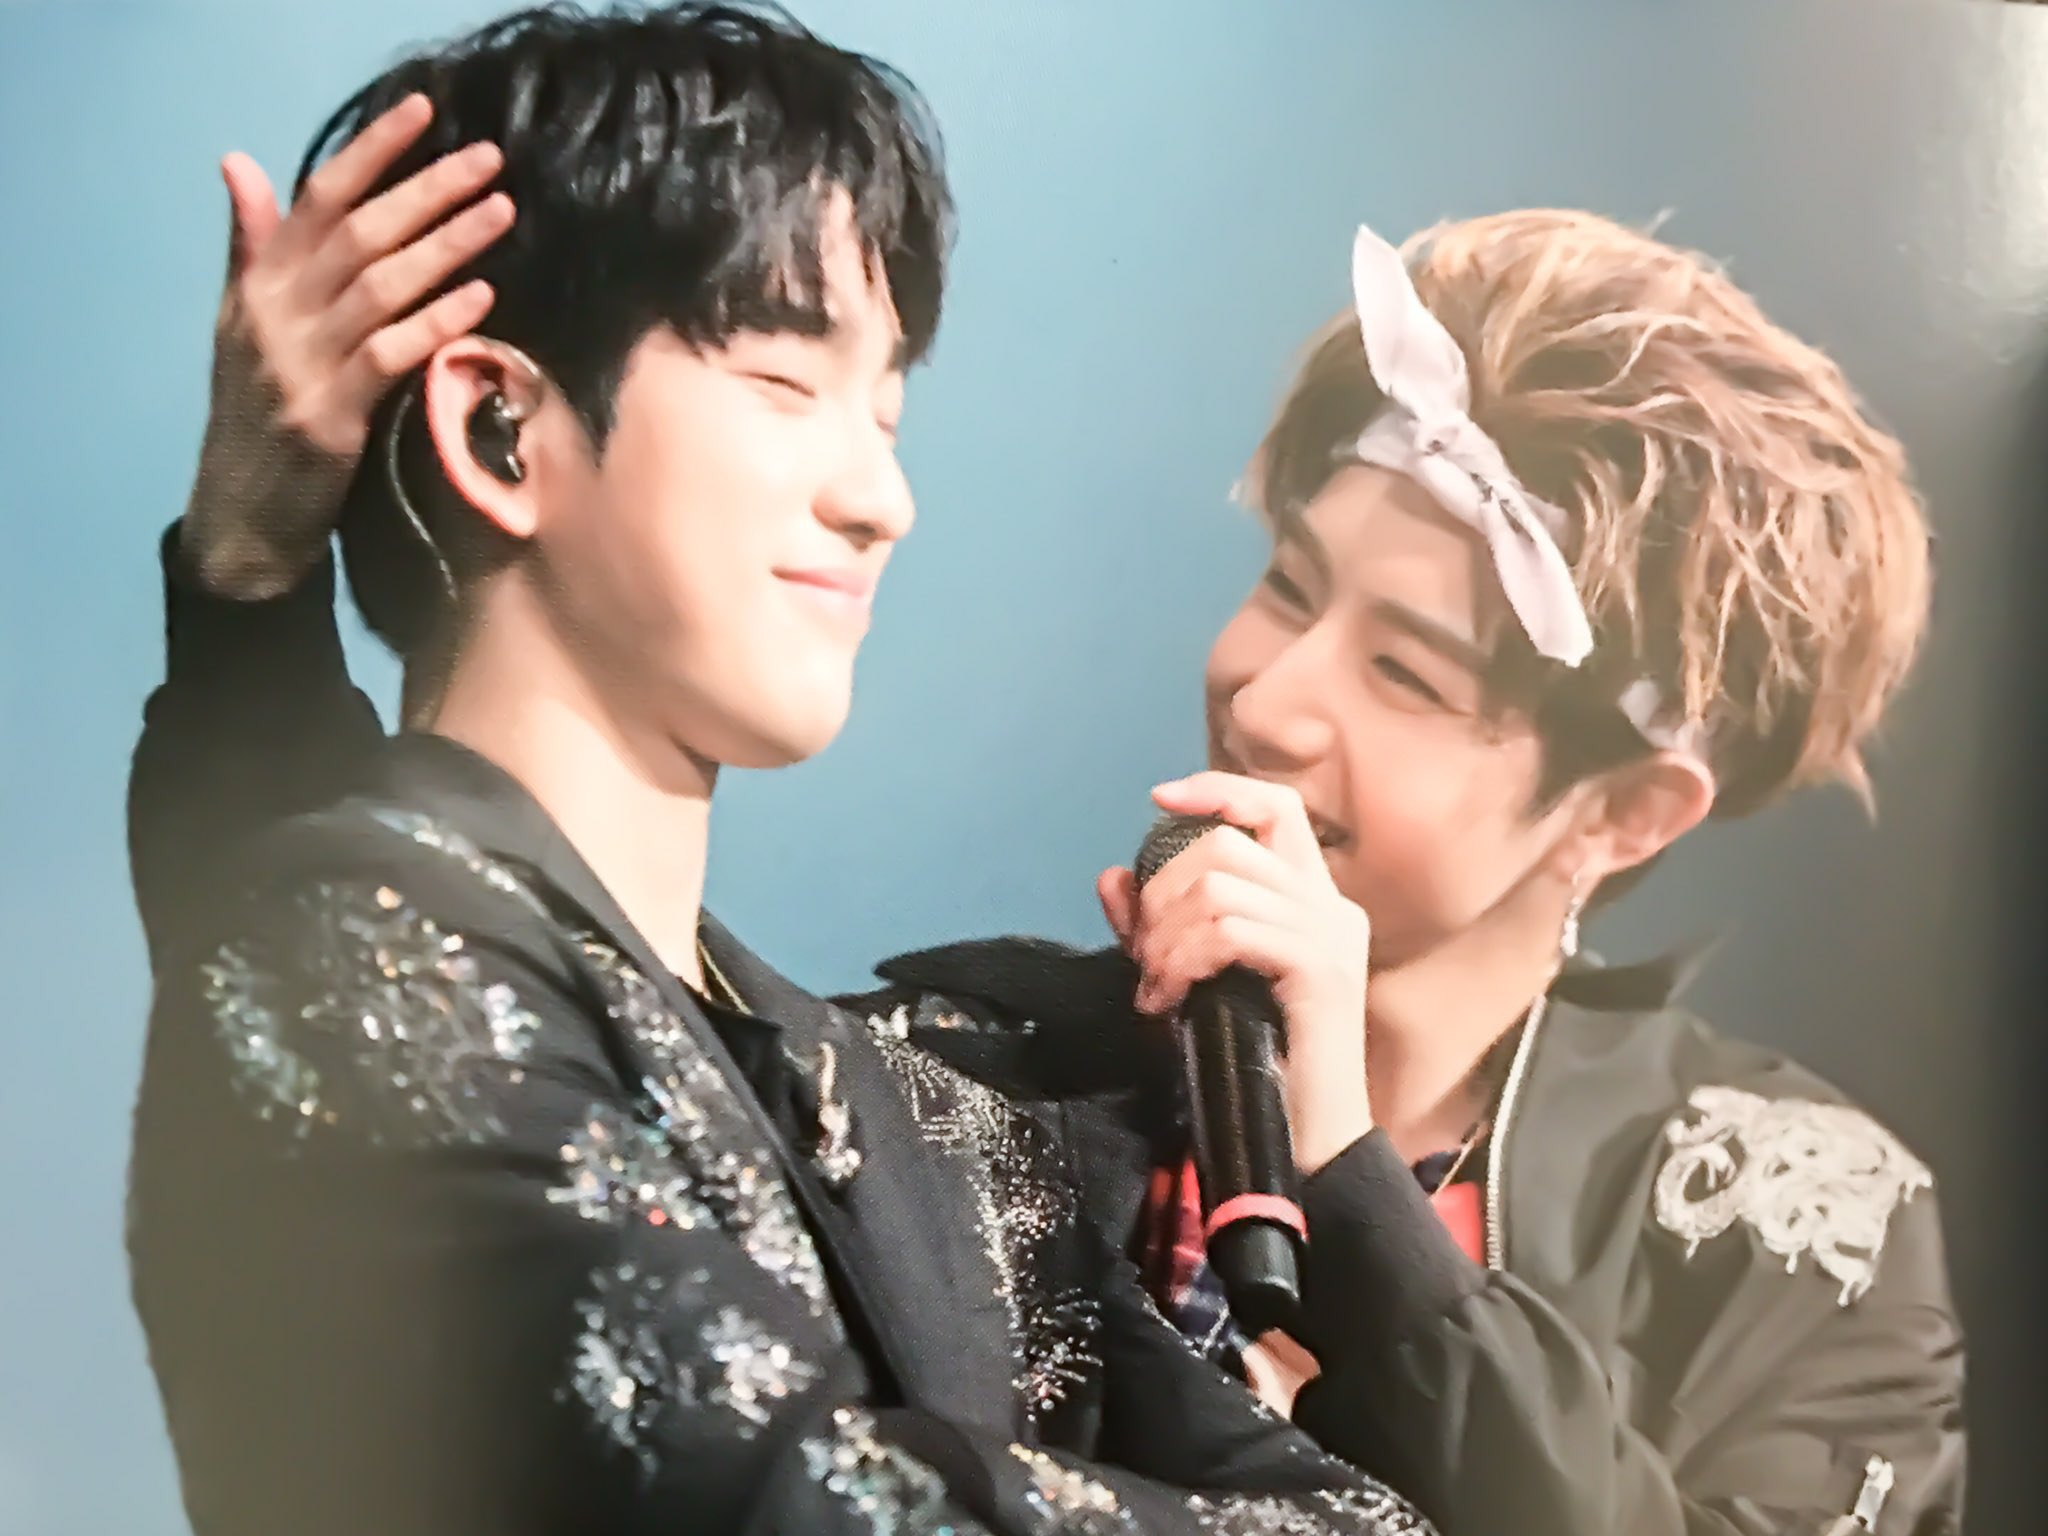 Scrolling up Scrolling down Scrolling up  Scrolling down And this picture is all I can see #markjin https://t.co/c1sF2xMDdP